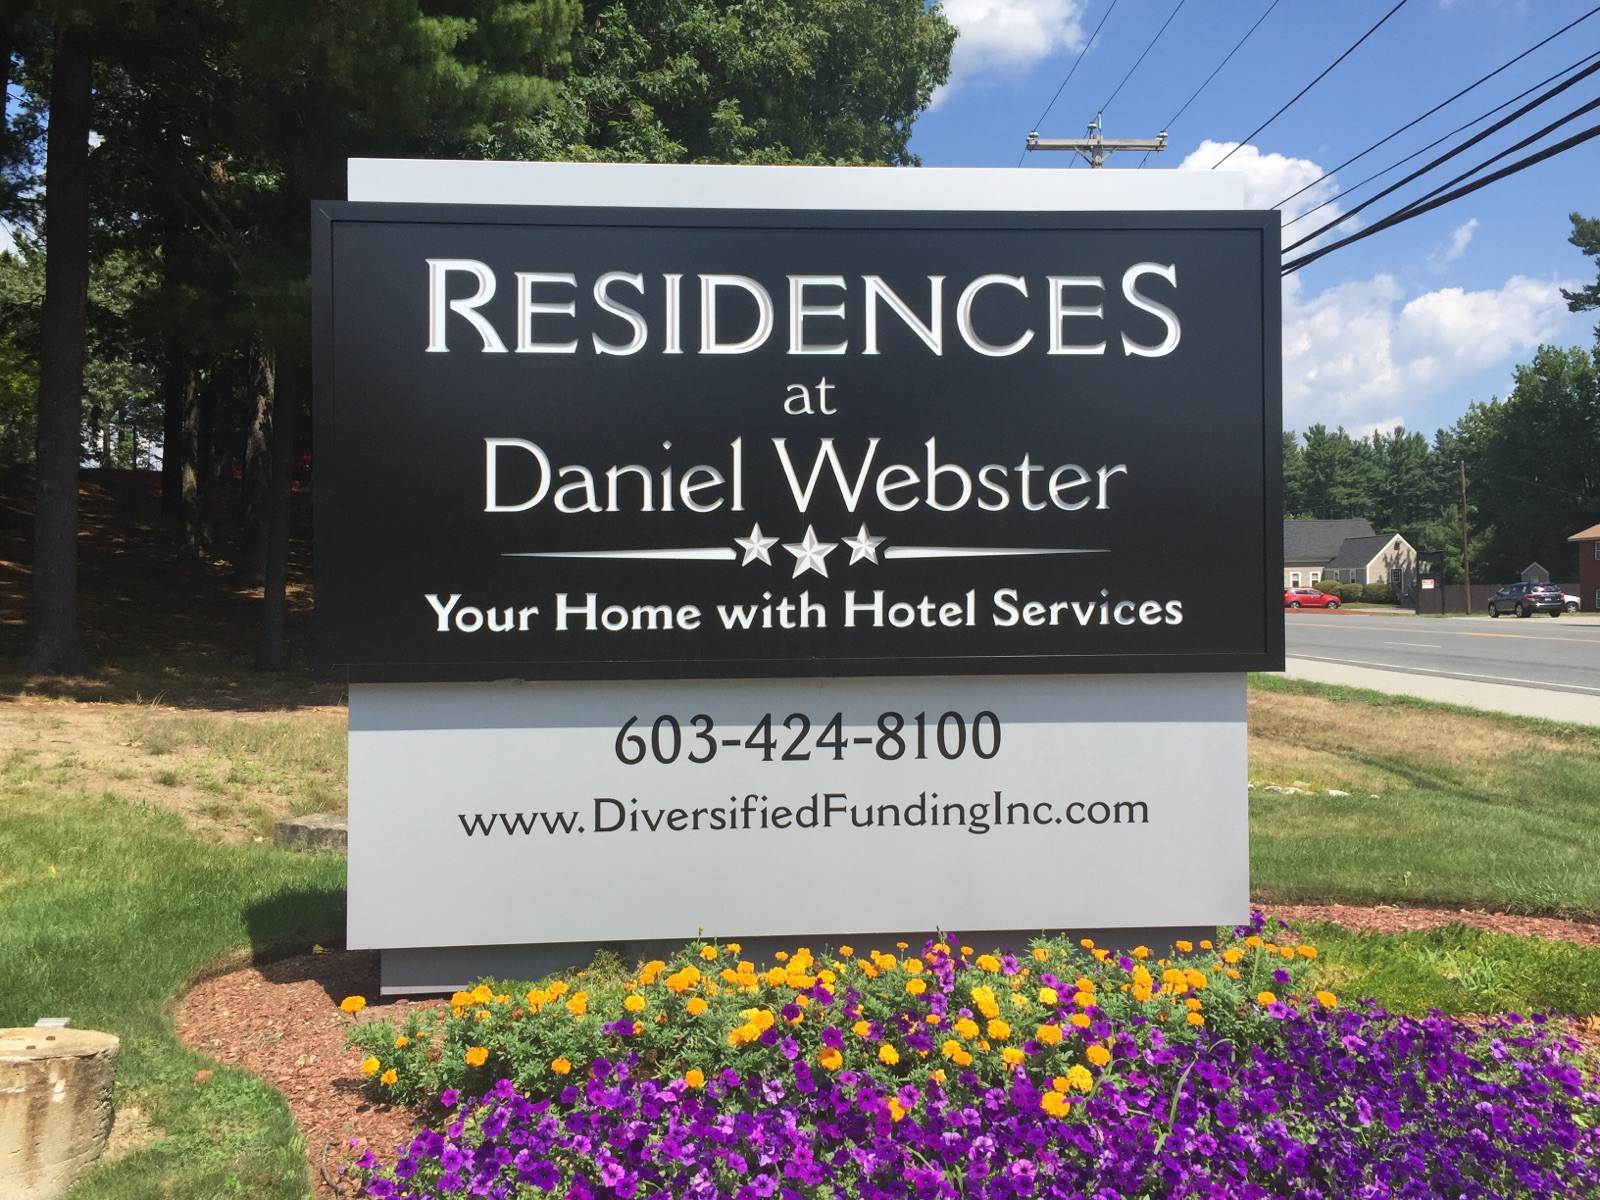 Residences at Daniel Webster